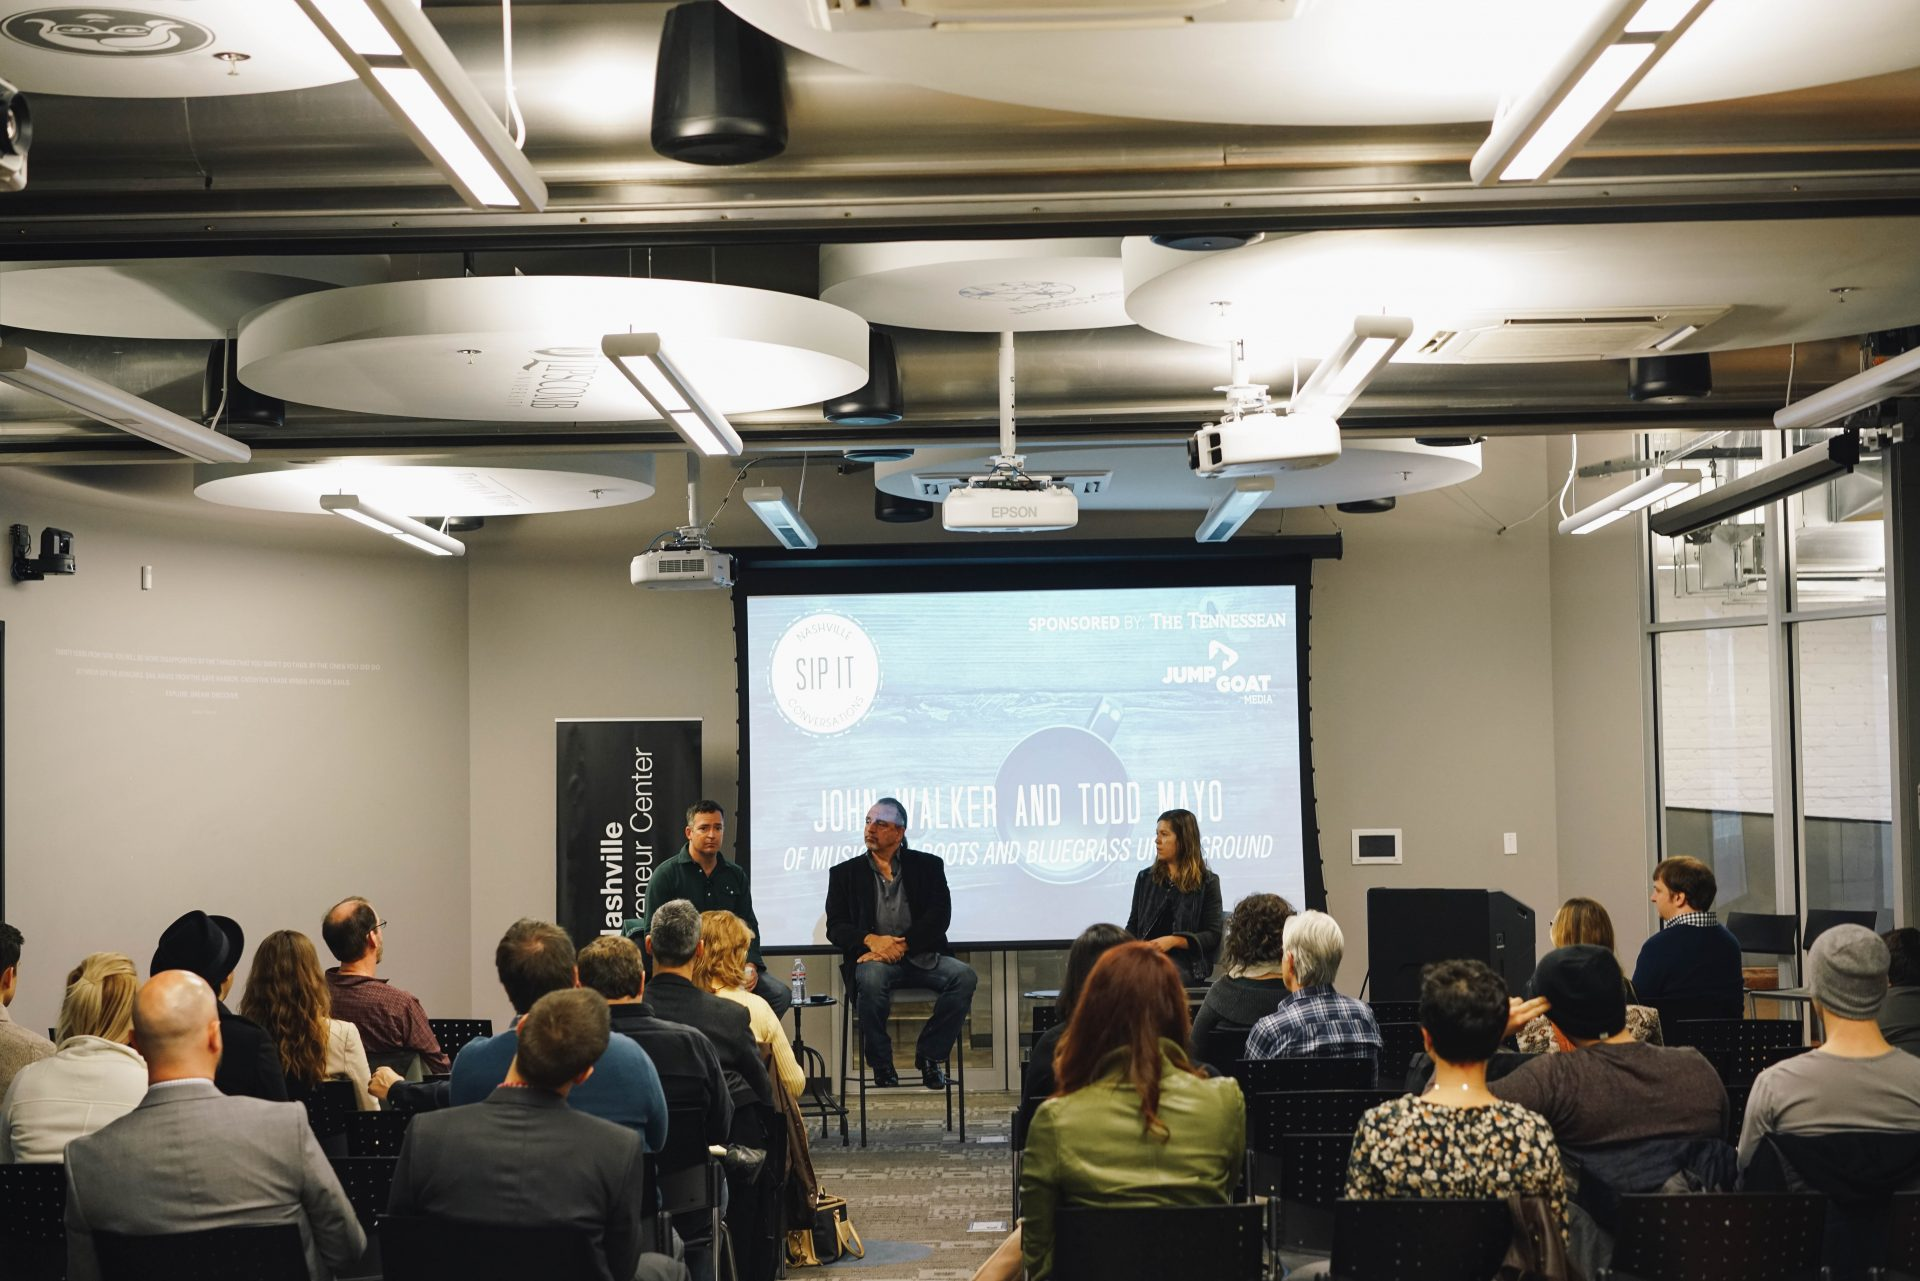 Sip It! Series at the Entrepreneur Center— John Walker + Todd Mayo of Music City Roots